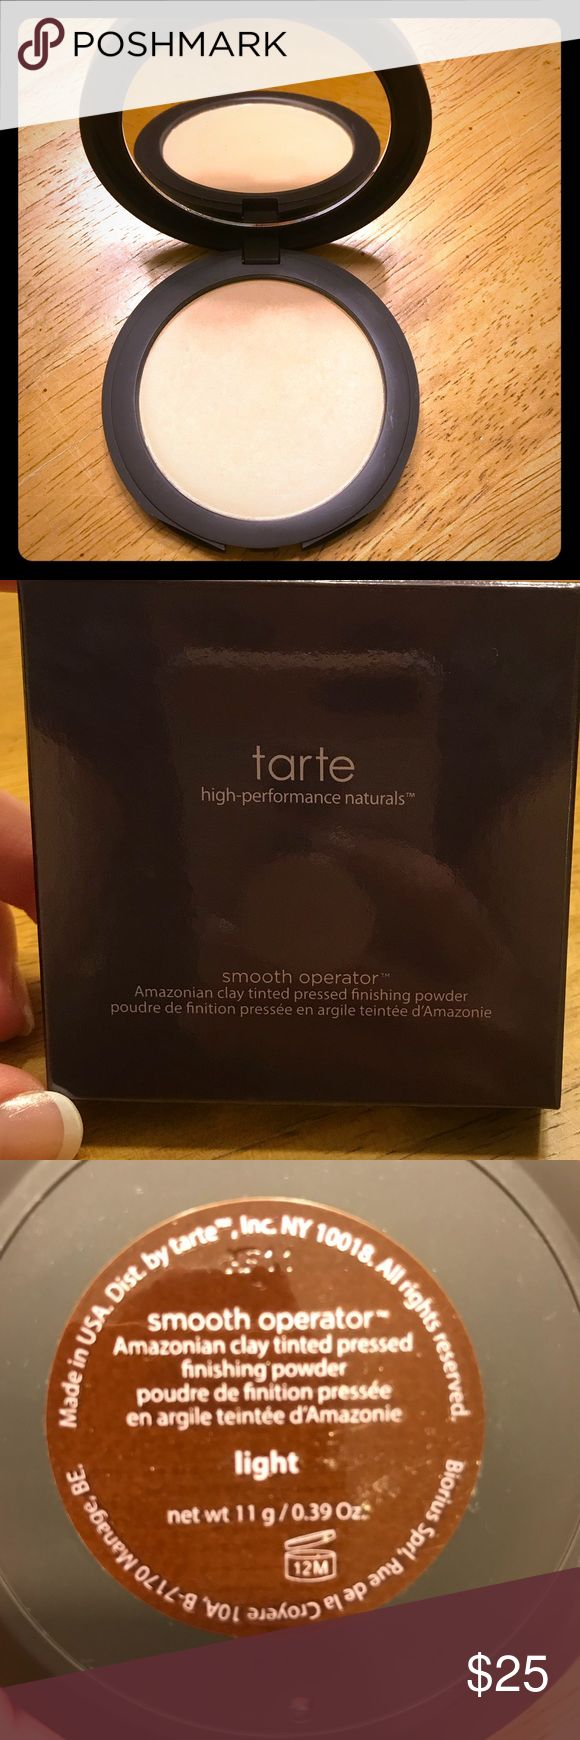 Tarte Smooth Operator Finishing Powder - light Authentic: New tarte pressed finishing powder. Swatched twice with clean brush but the color was too dark. From Sephora. Light - fair to light complexions with beige & yellow undertones tarte Makeup Face Powder